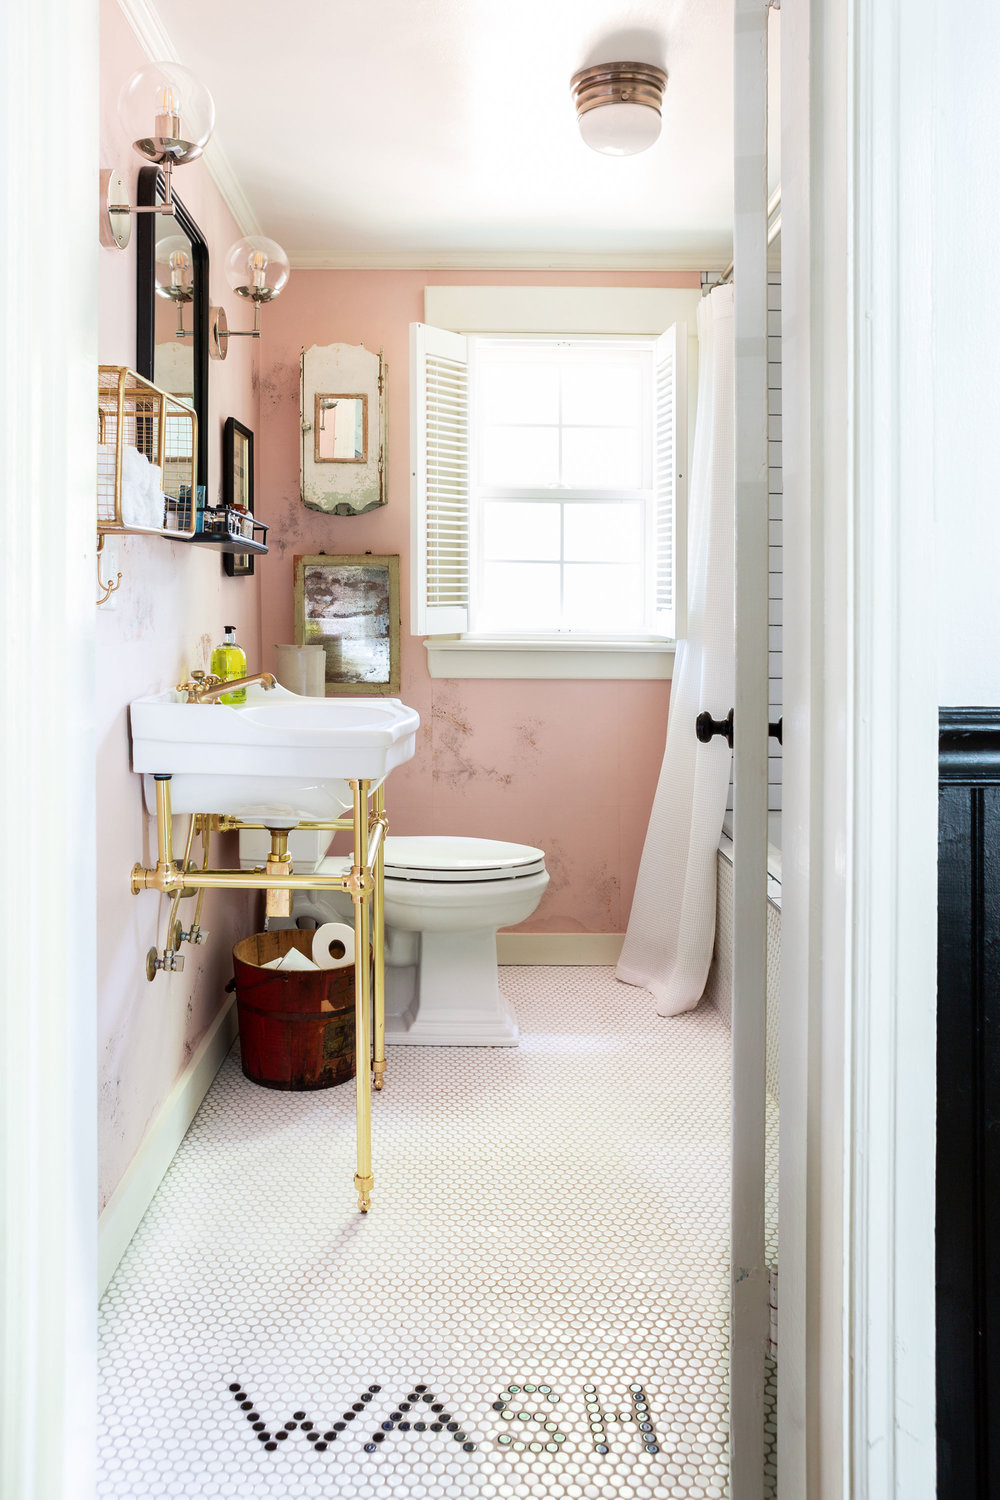 """No Southern home is complete without a stylish bathroom,"" Holly says of her brassy, gold-on-pink design for the cottage's renovated water closet. ""There's absolutely got to be a soaking tub, too."""